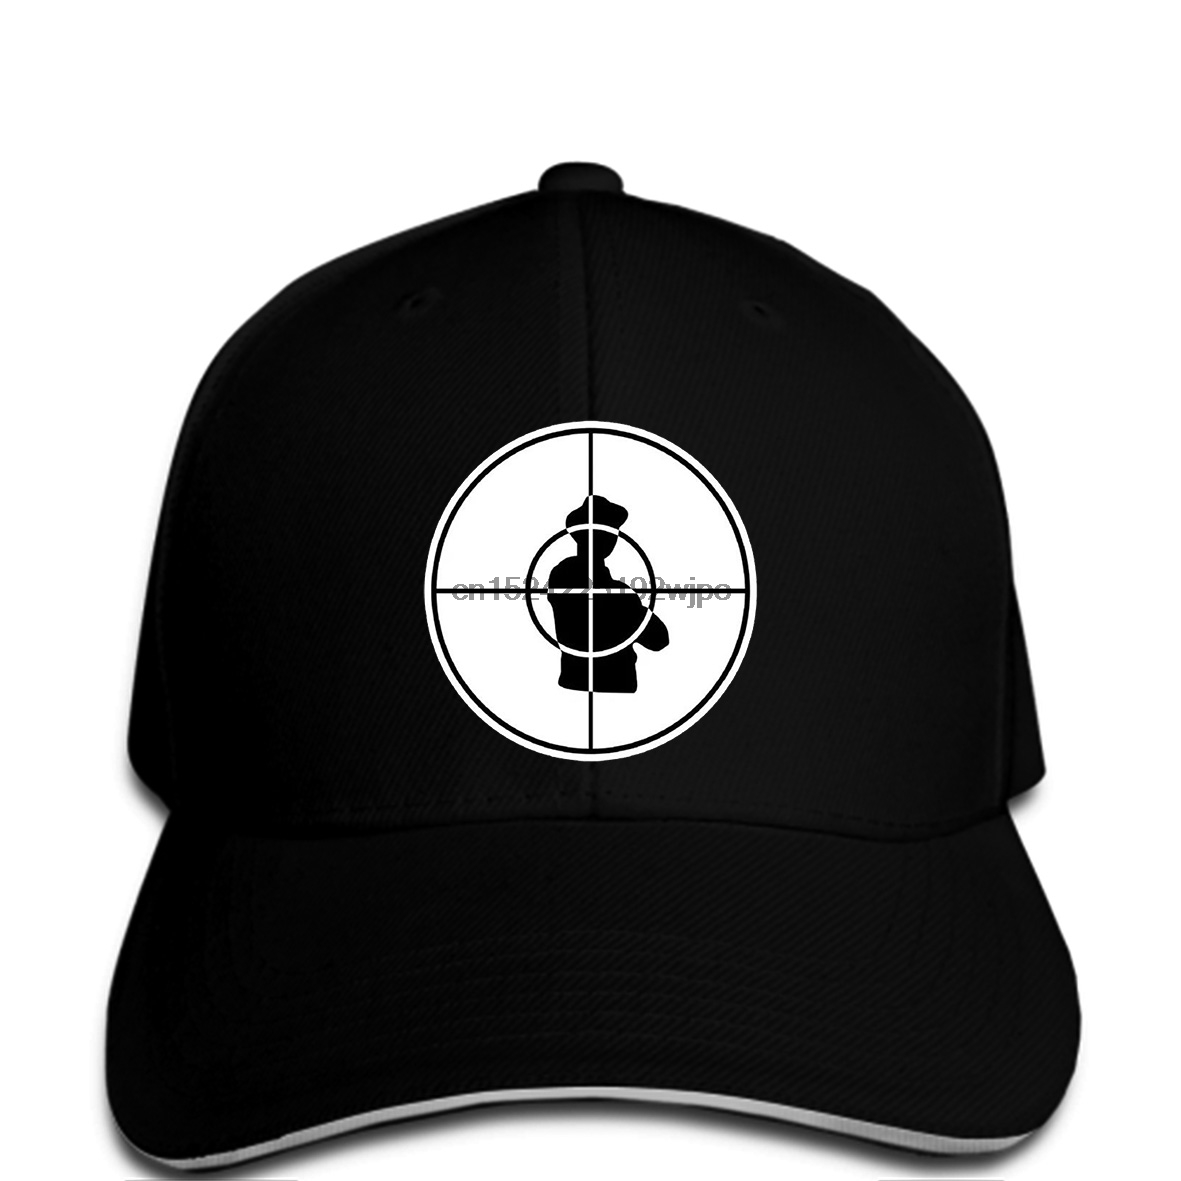 c8ade8b49b7 Detail Feedback Questions about Newest men s fashion Mens White Public Enemy  Image Design cap Baseball cap slogans Customized for mens on Aliexpress.com  ...